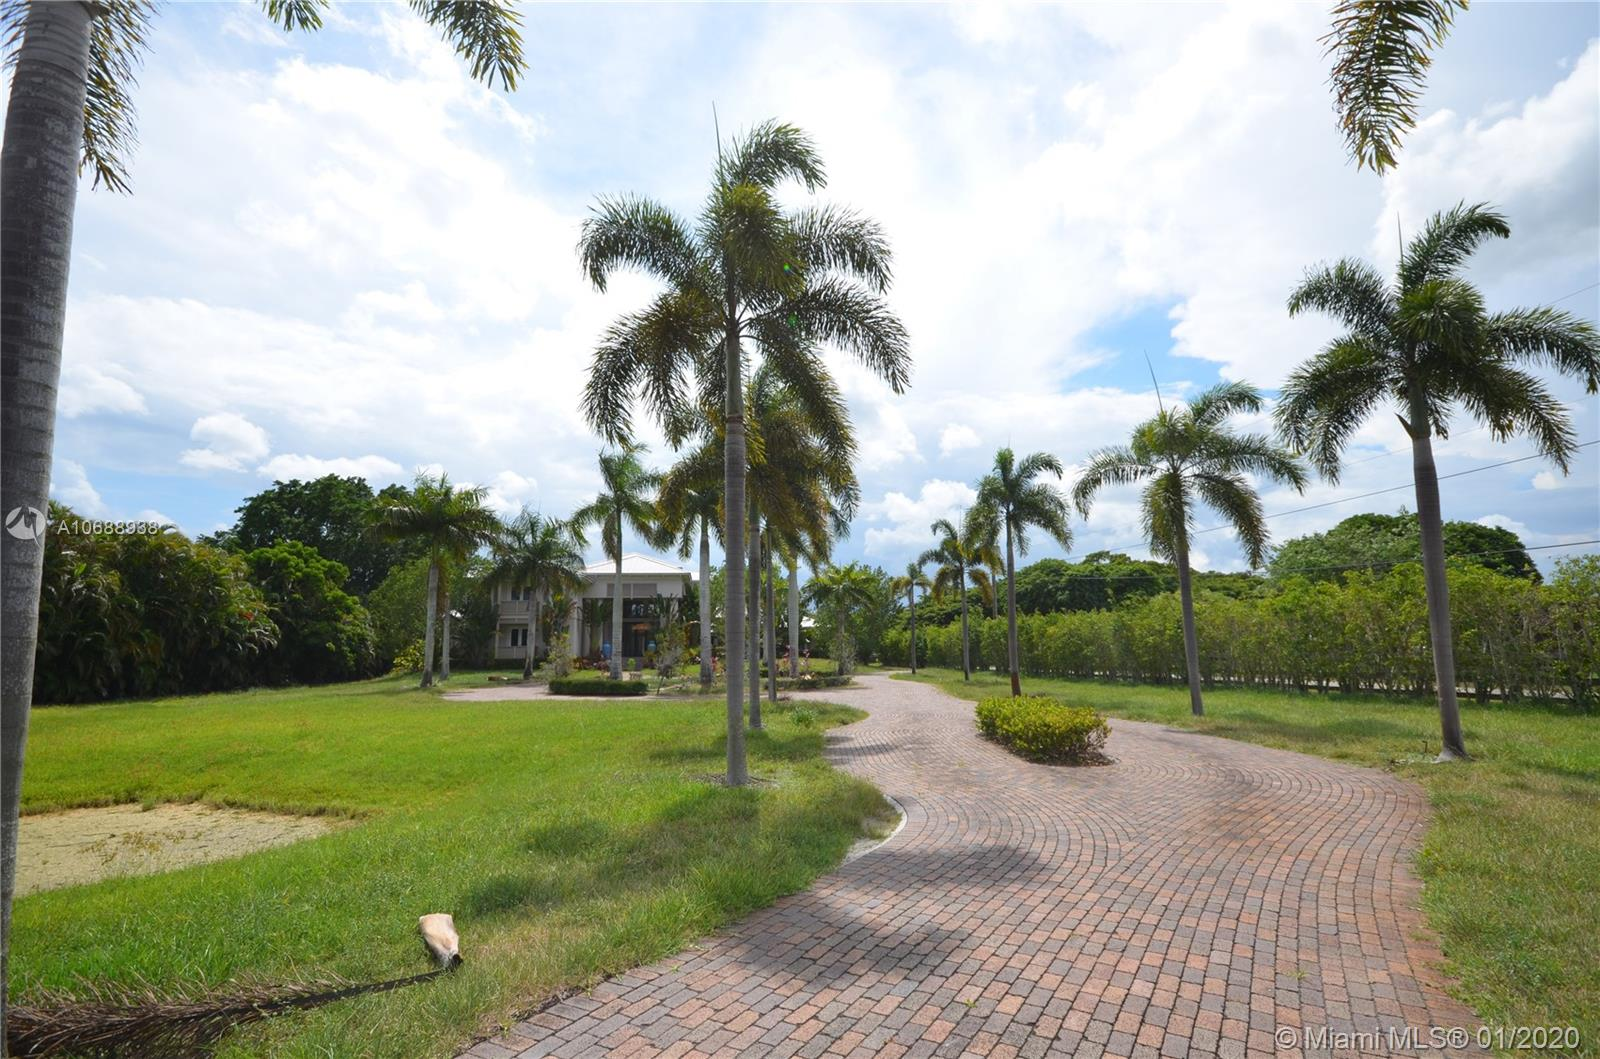 5271 SW 136th Ave, Southwest Ranches, FL 33330